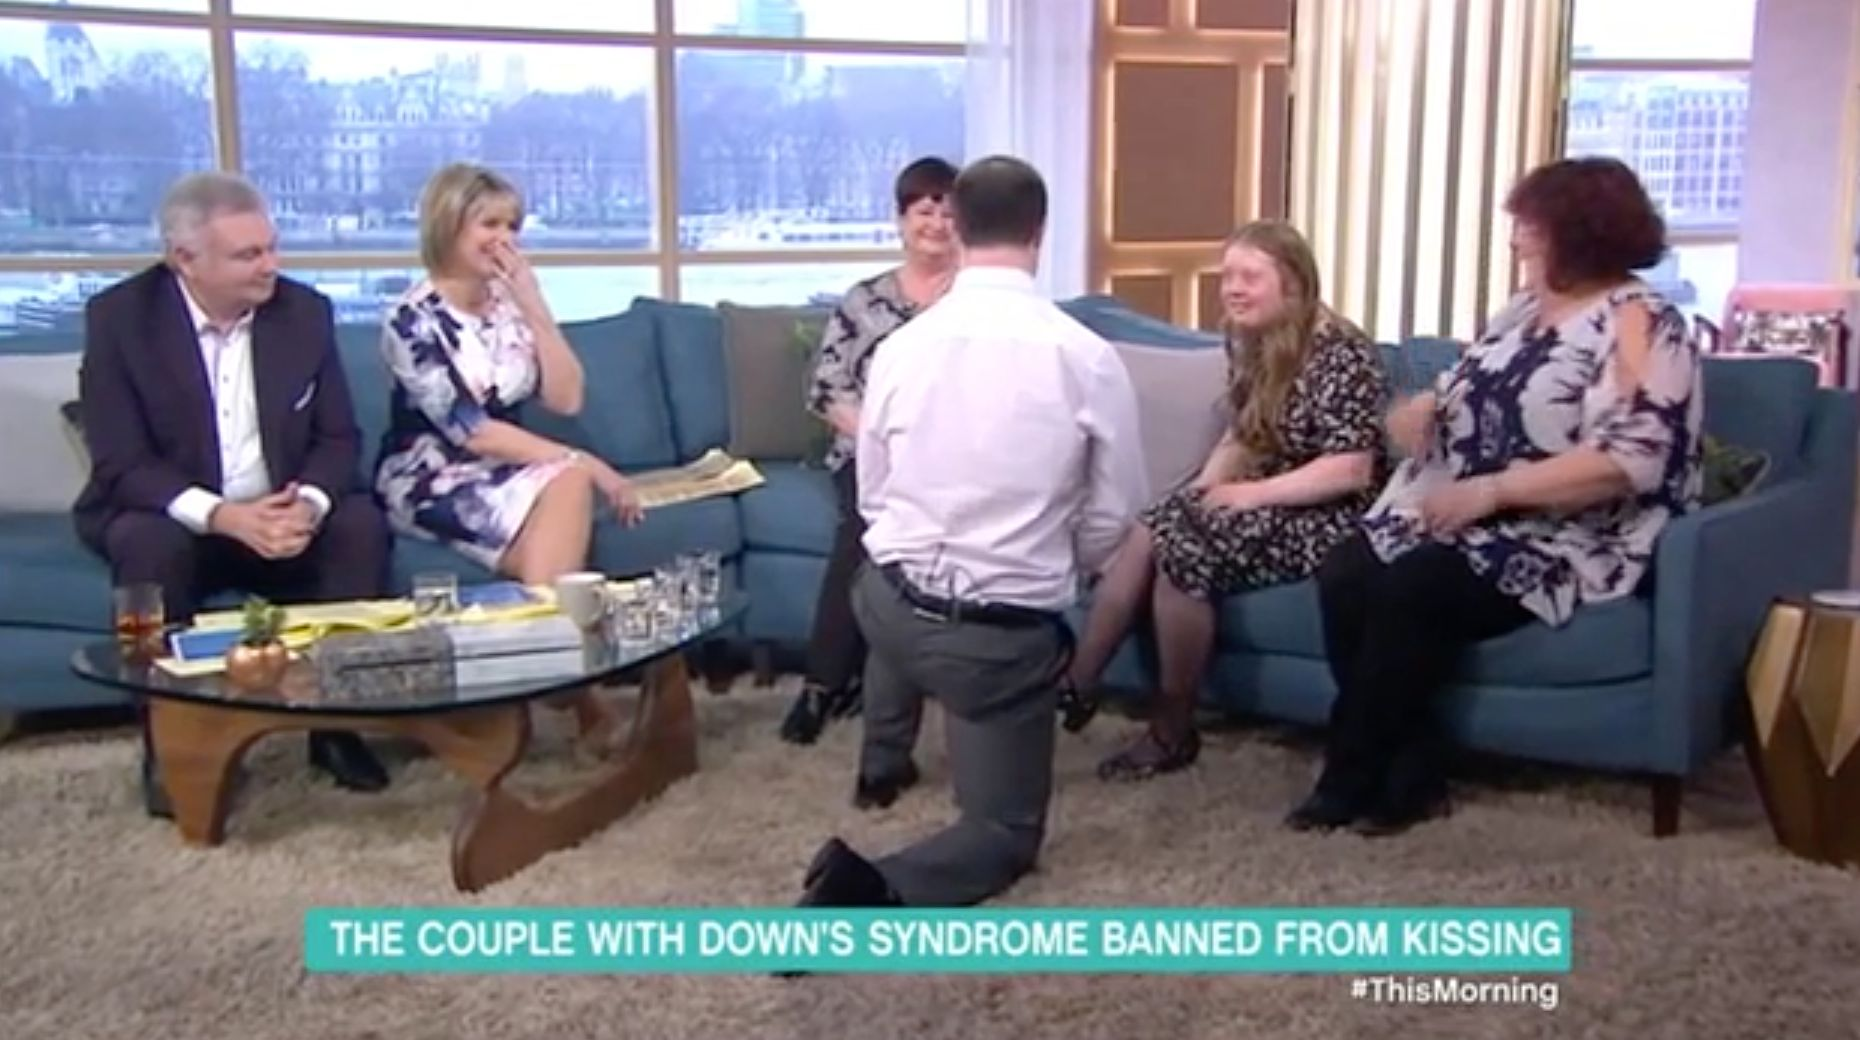 Couple With Down's Syndrome Who Were 'Banned From Kissing' Get Engaged On 'This